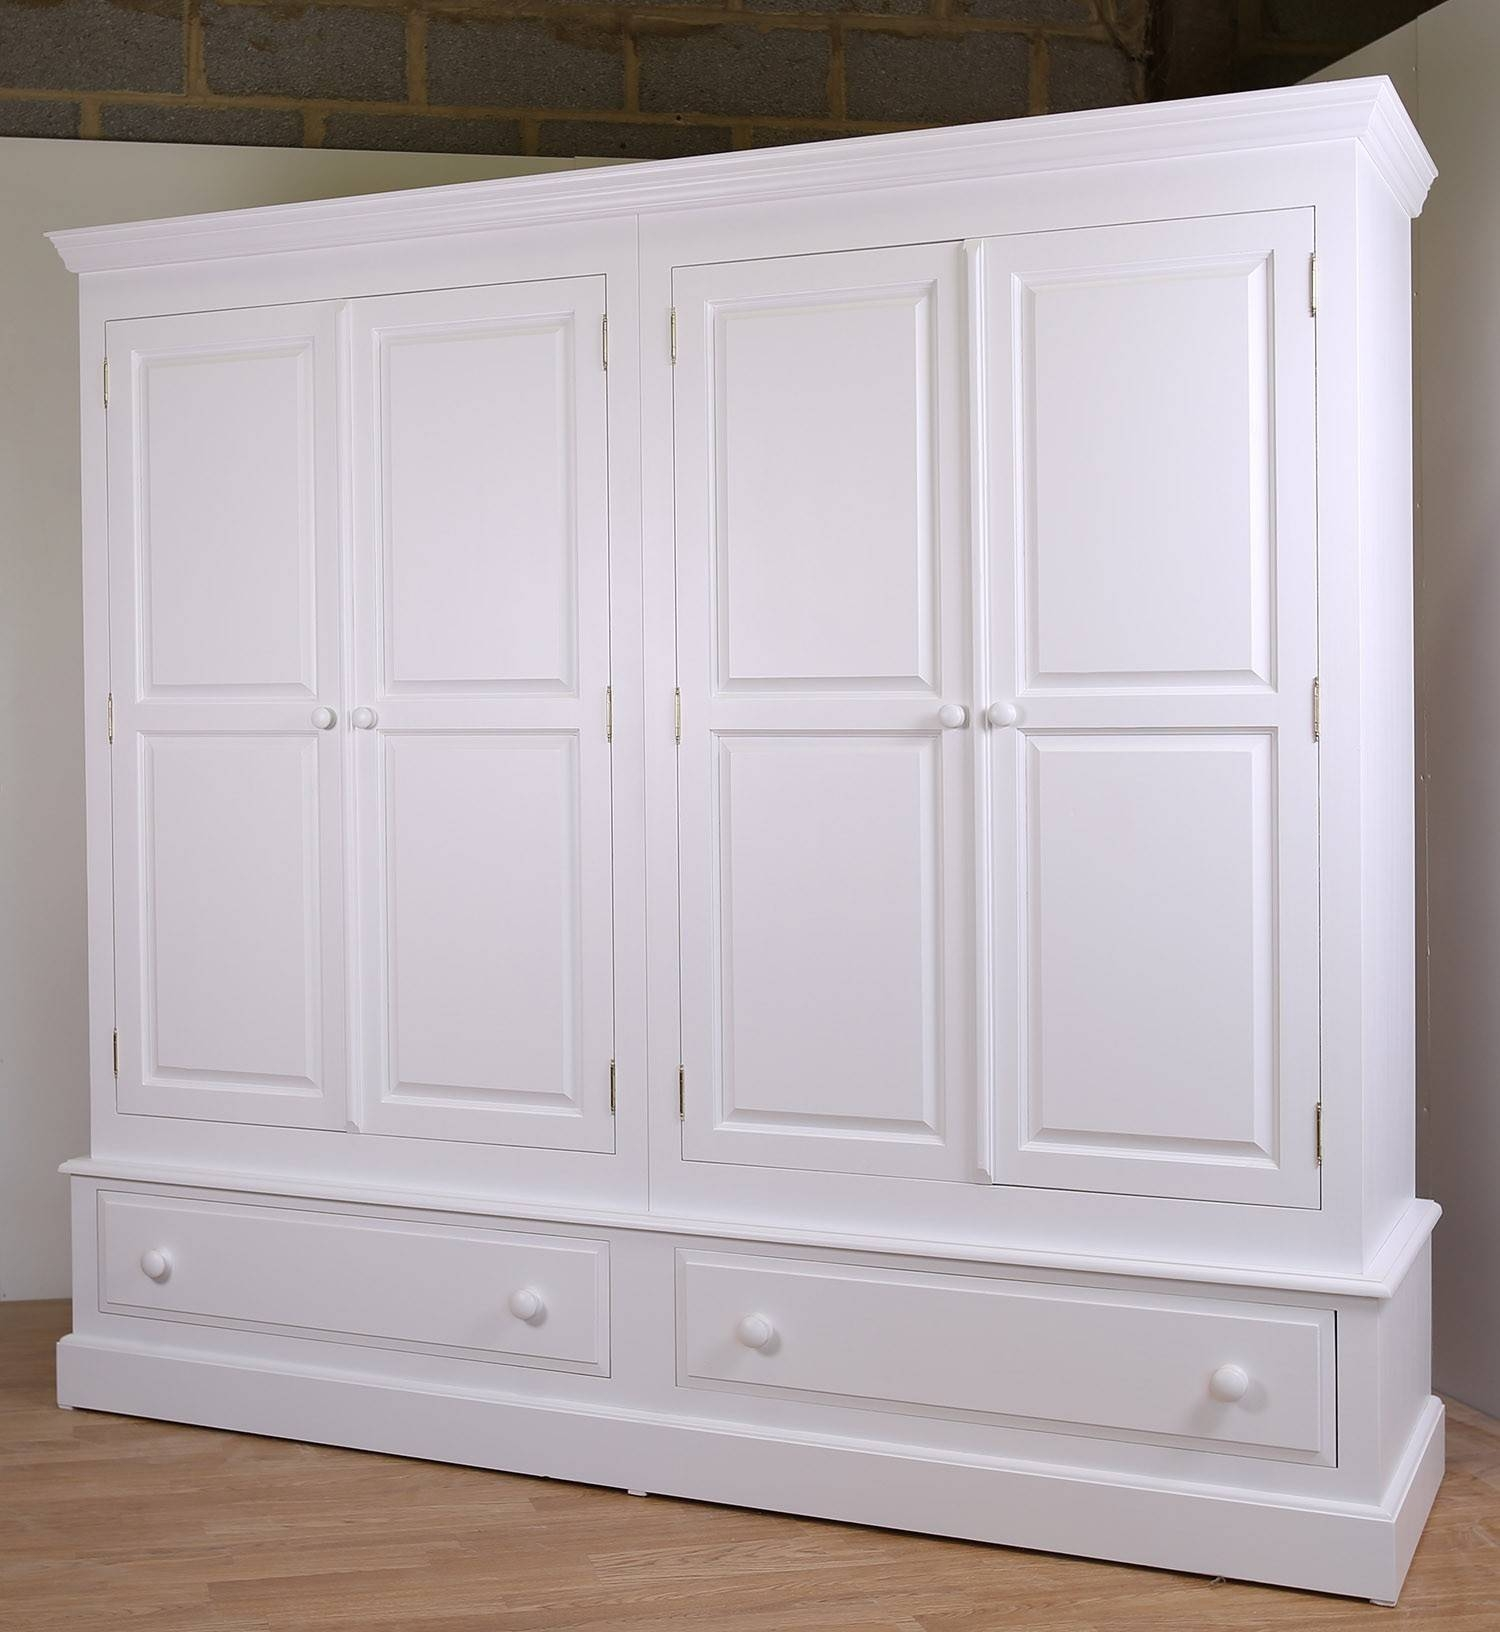 Farrow & Ball Painted 4 Door Wardrobe With Drawers In 3 Sizes within Large White Wardrobes (Image 7 of 15)